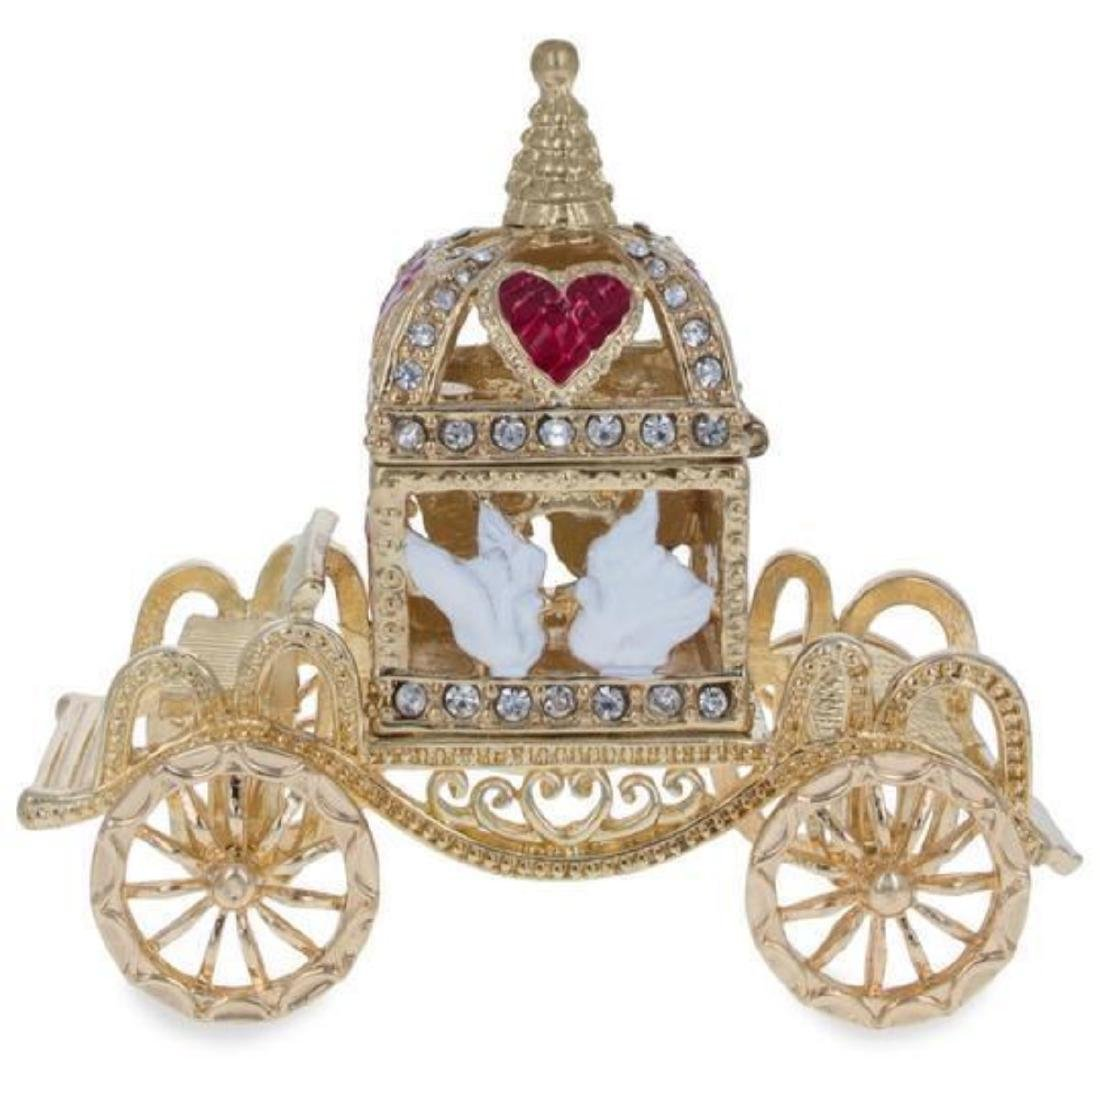 Royal Coronation Coach with Doves Trinket Box Figurine - 2